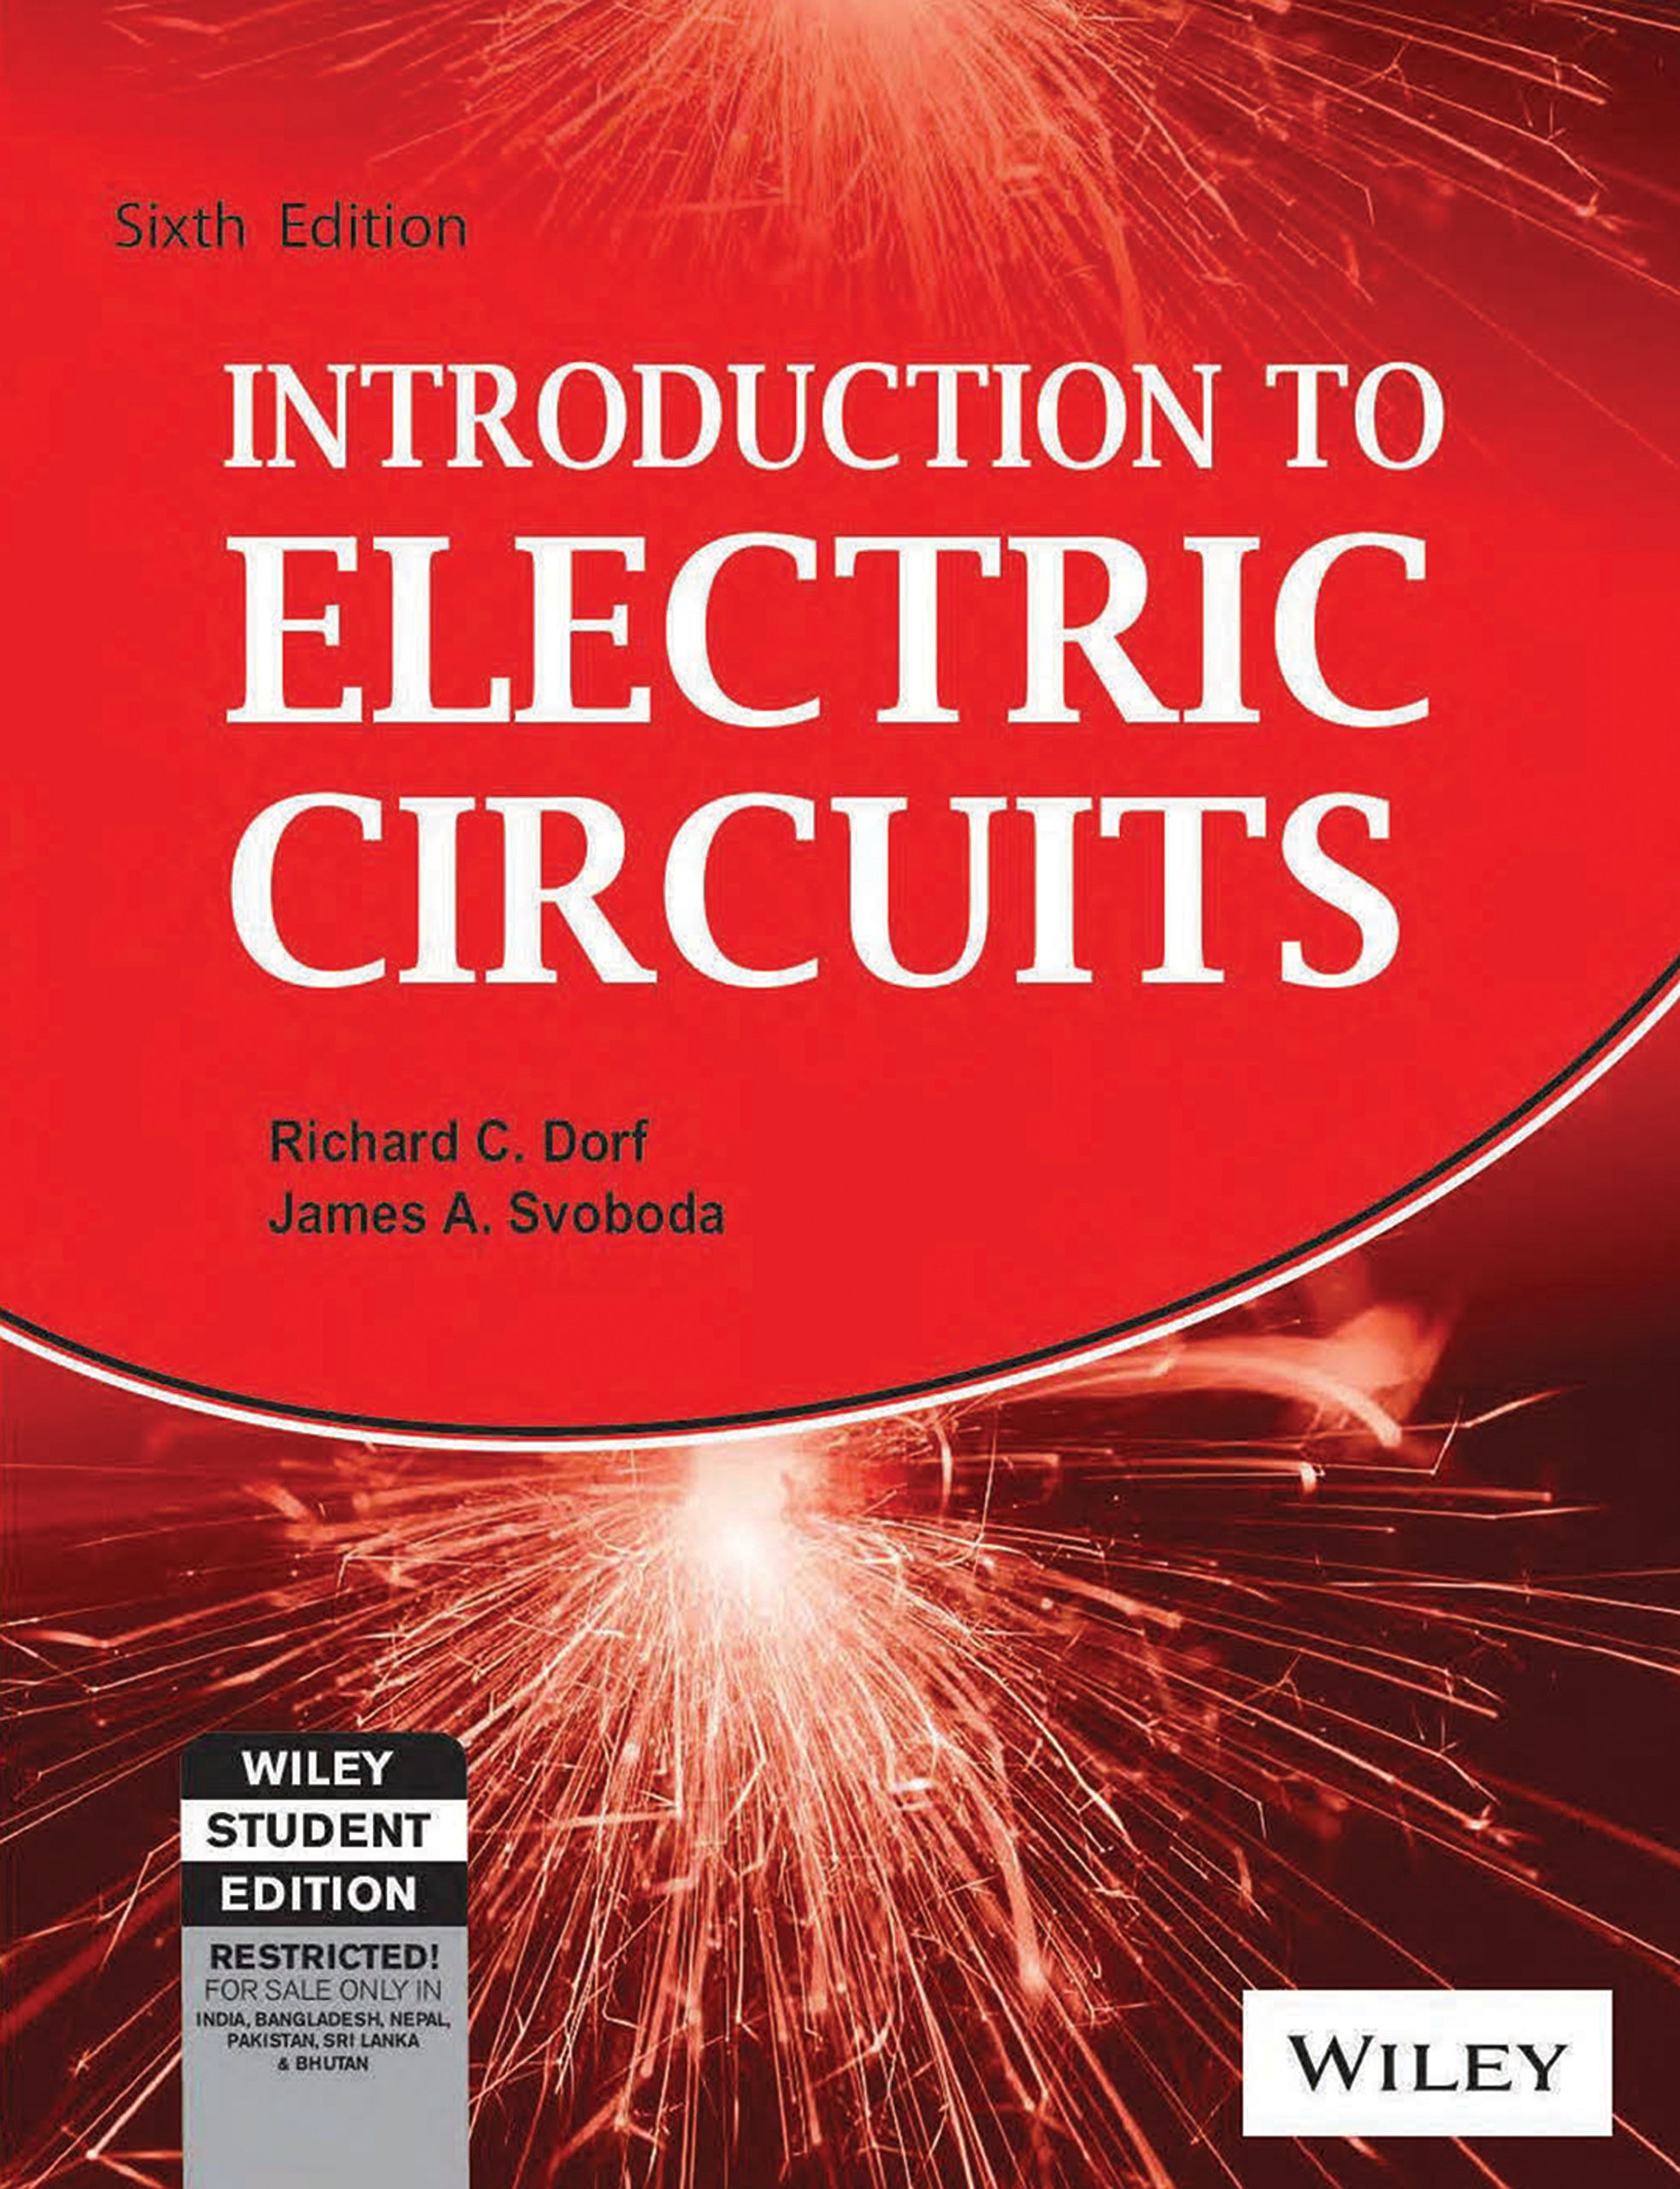 buy introduction to electric circuits book online at low prices inintroduction to electric circuits paperback \u2013 12 jun 2006 by richard dorf